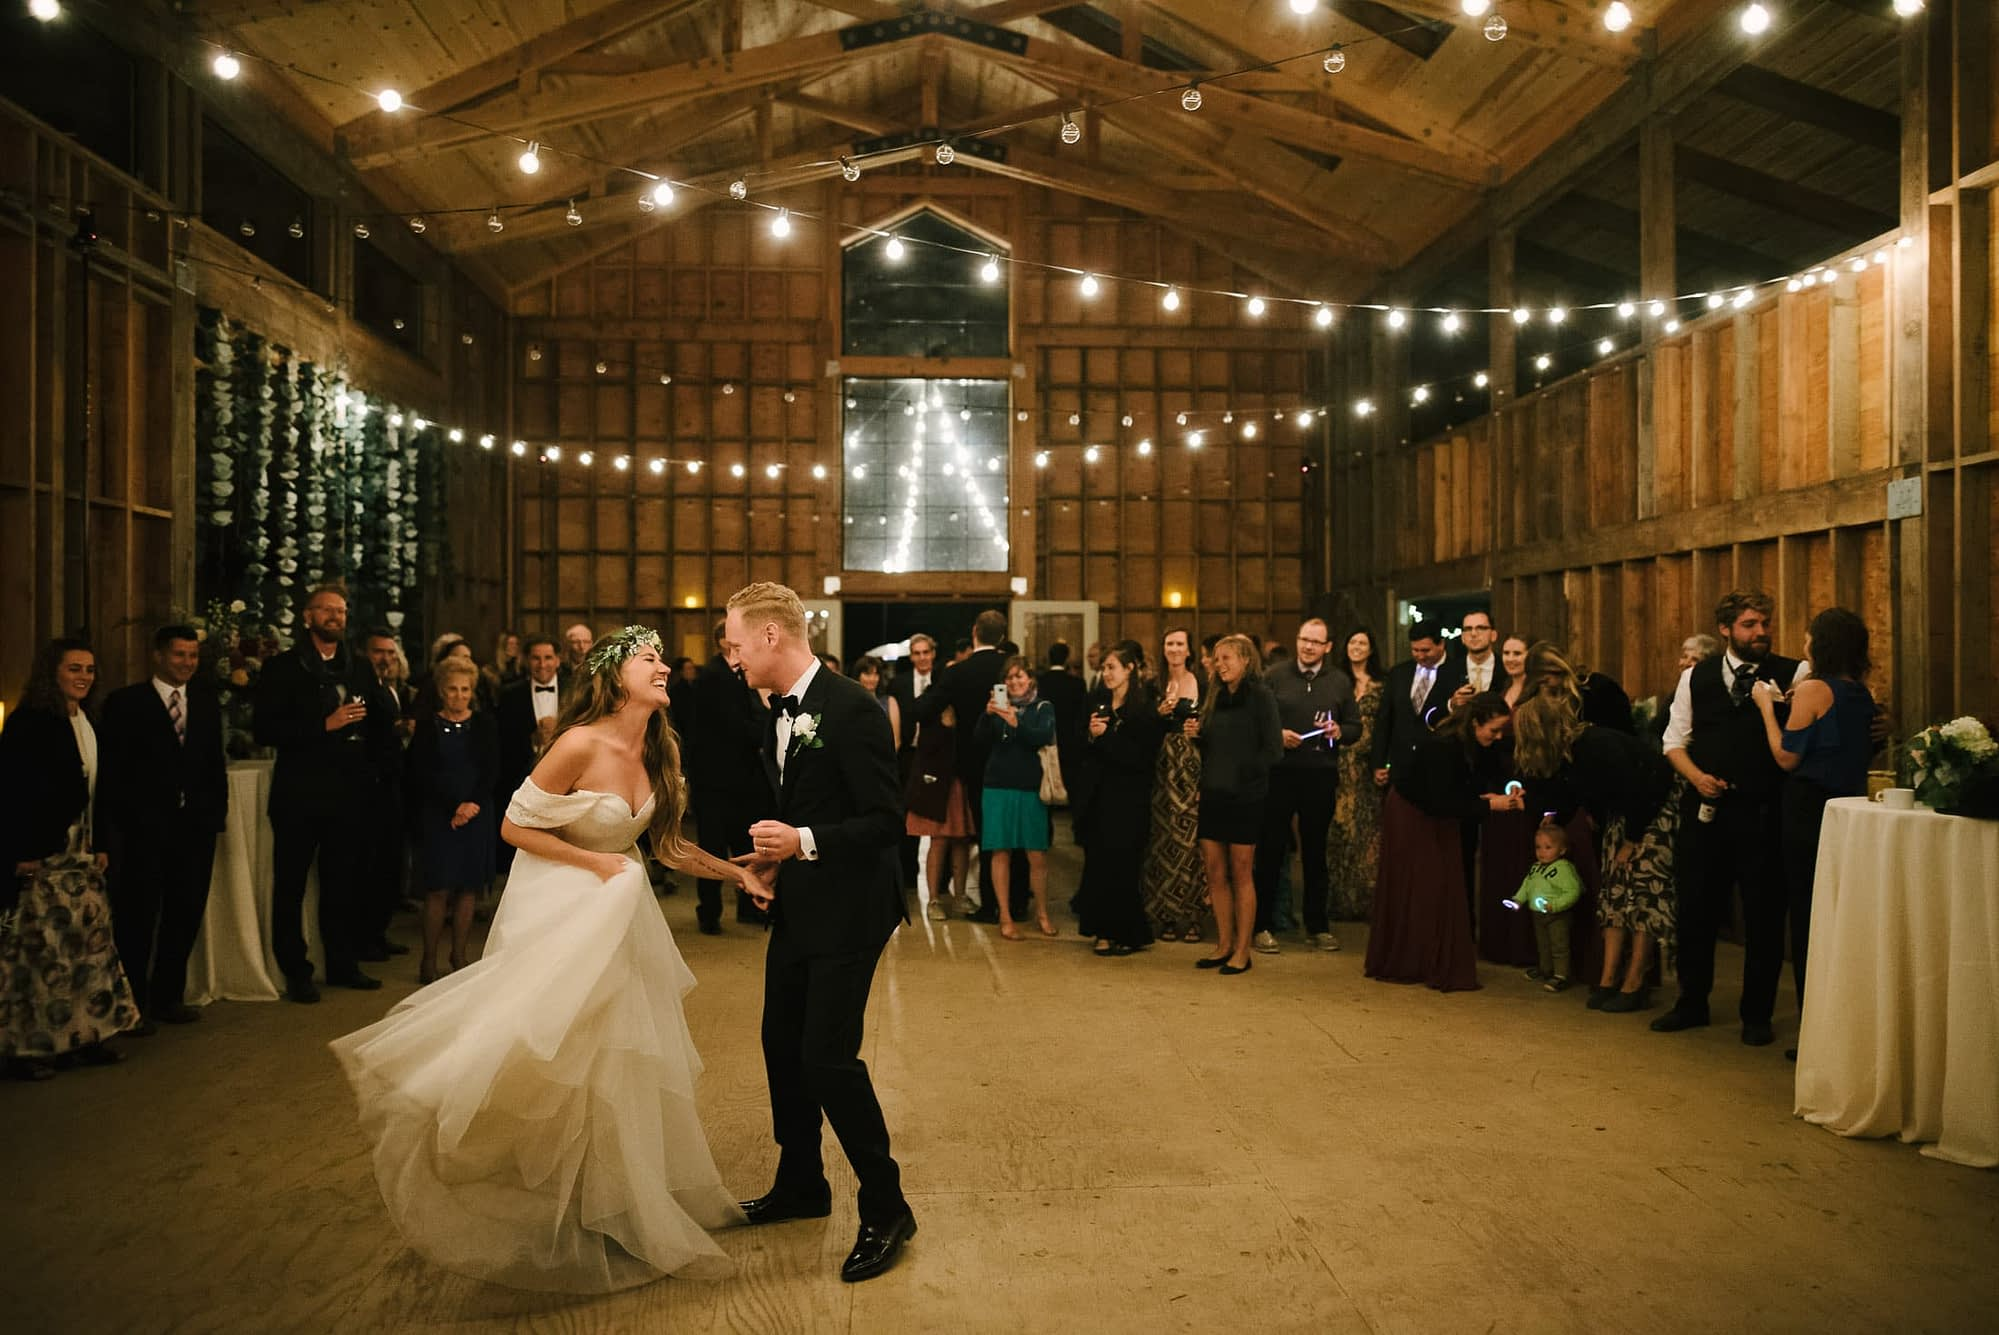 Oz Farm Wedding Barn Dancing